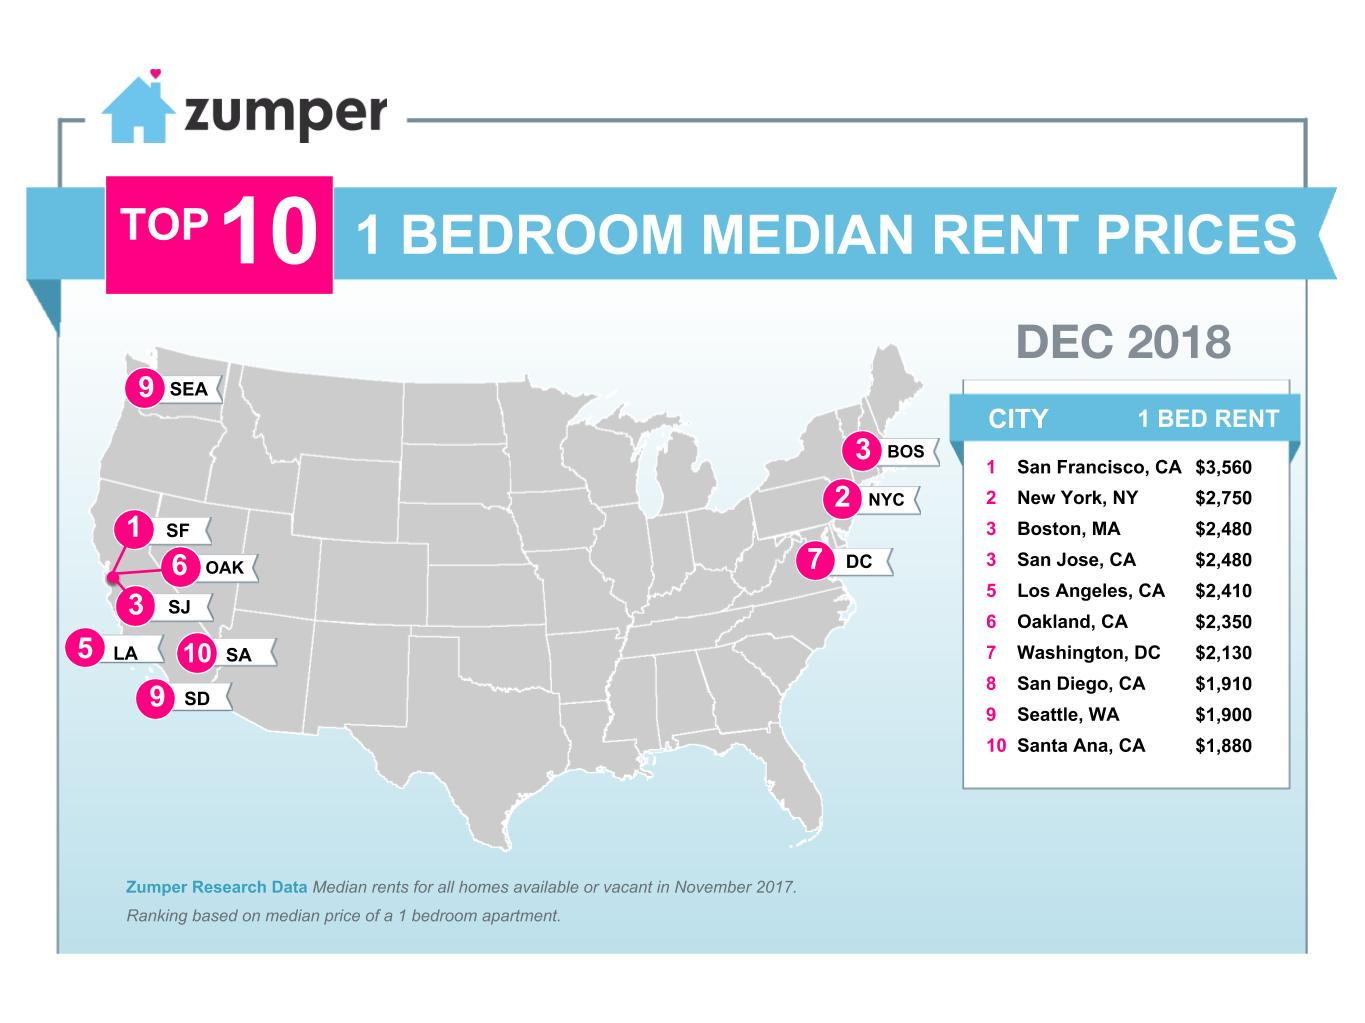 Boston is Ranked #3 Most Expensive Rental Market